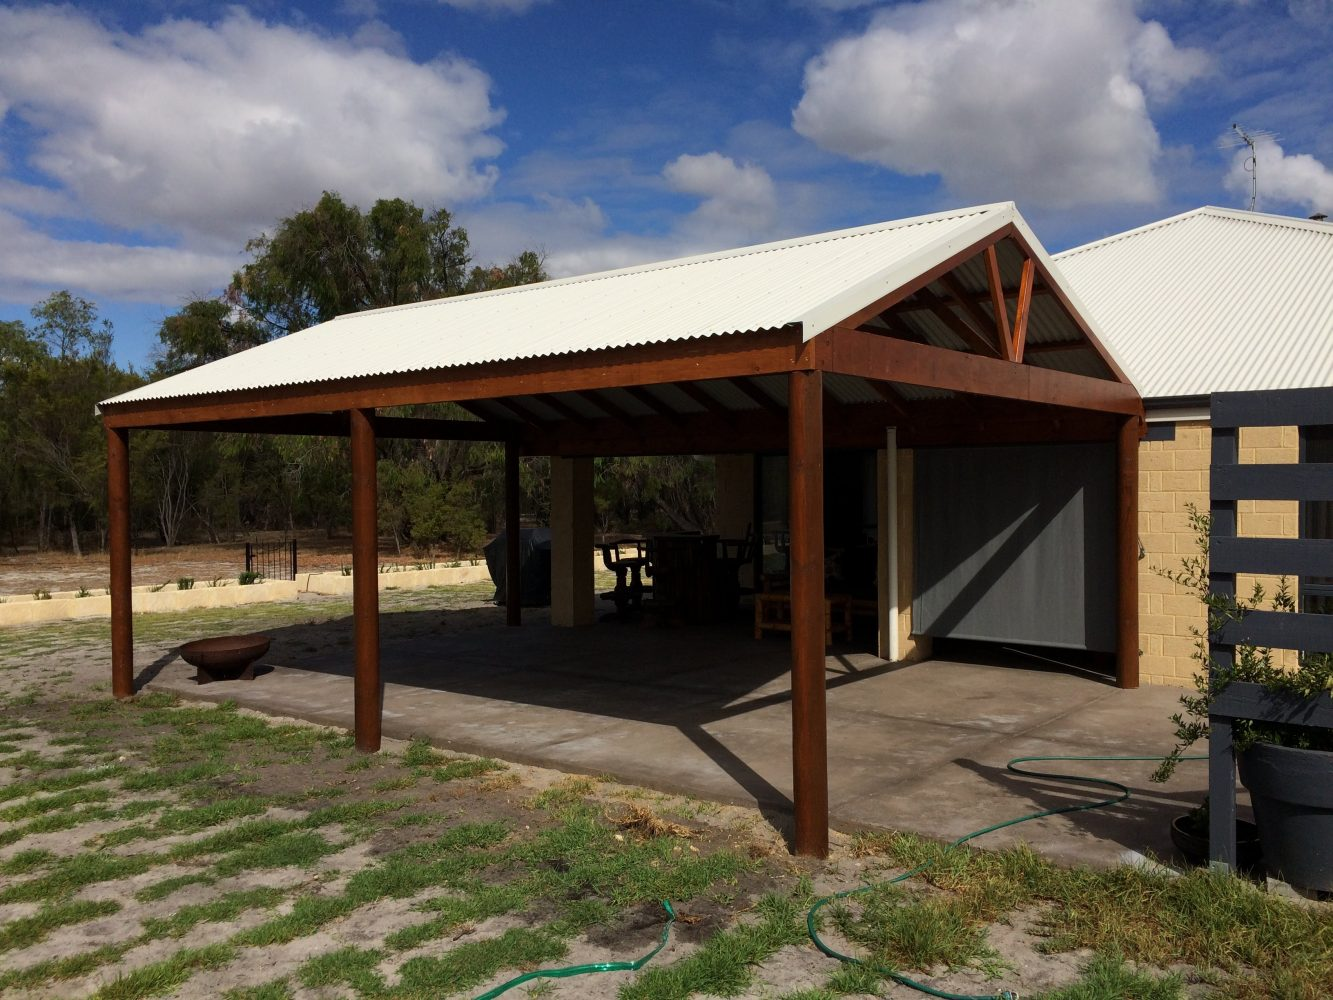 Tropical Timber Patios Huts Amp Decks Wa Perth Diy Or